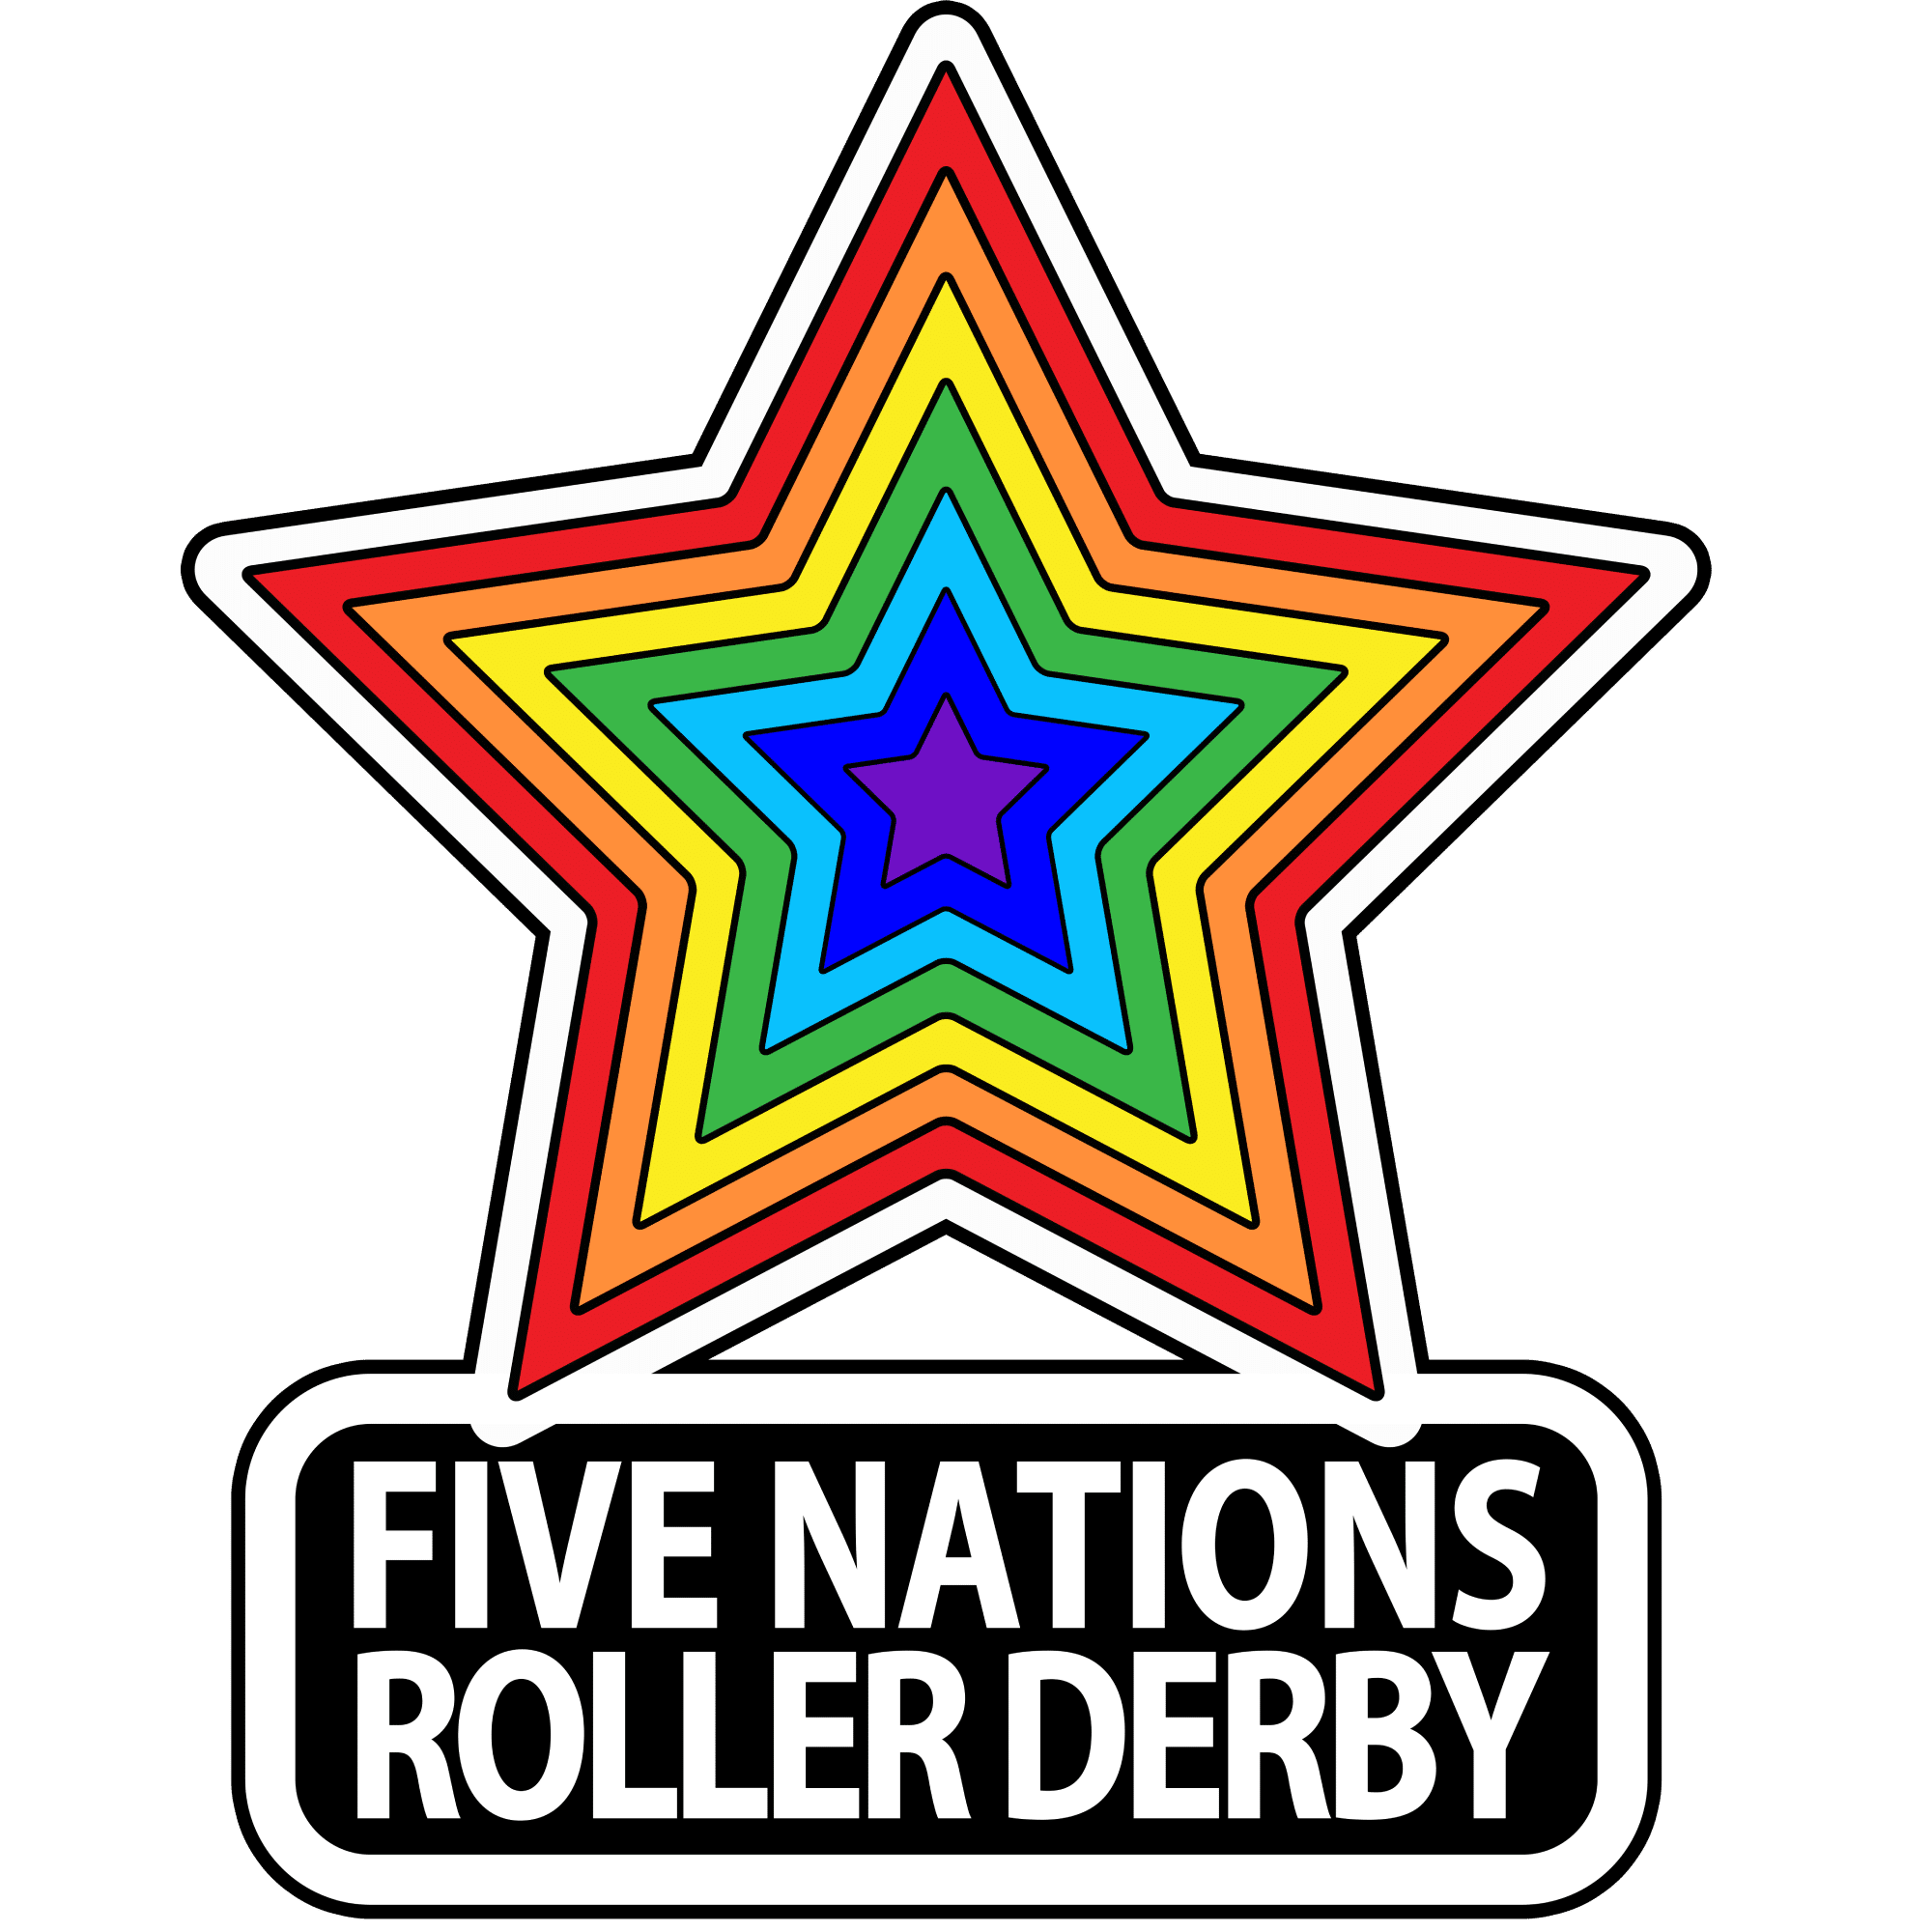 Five Nations Roller Derby